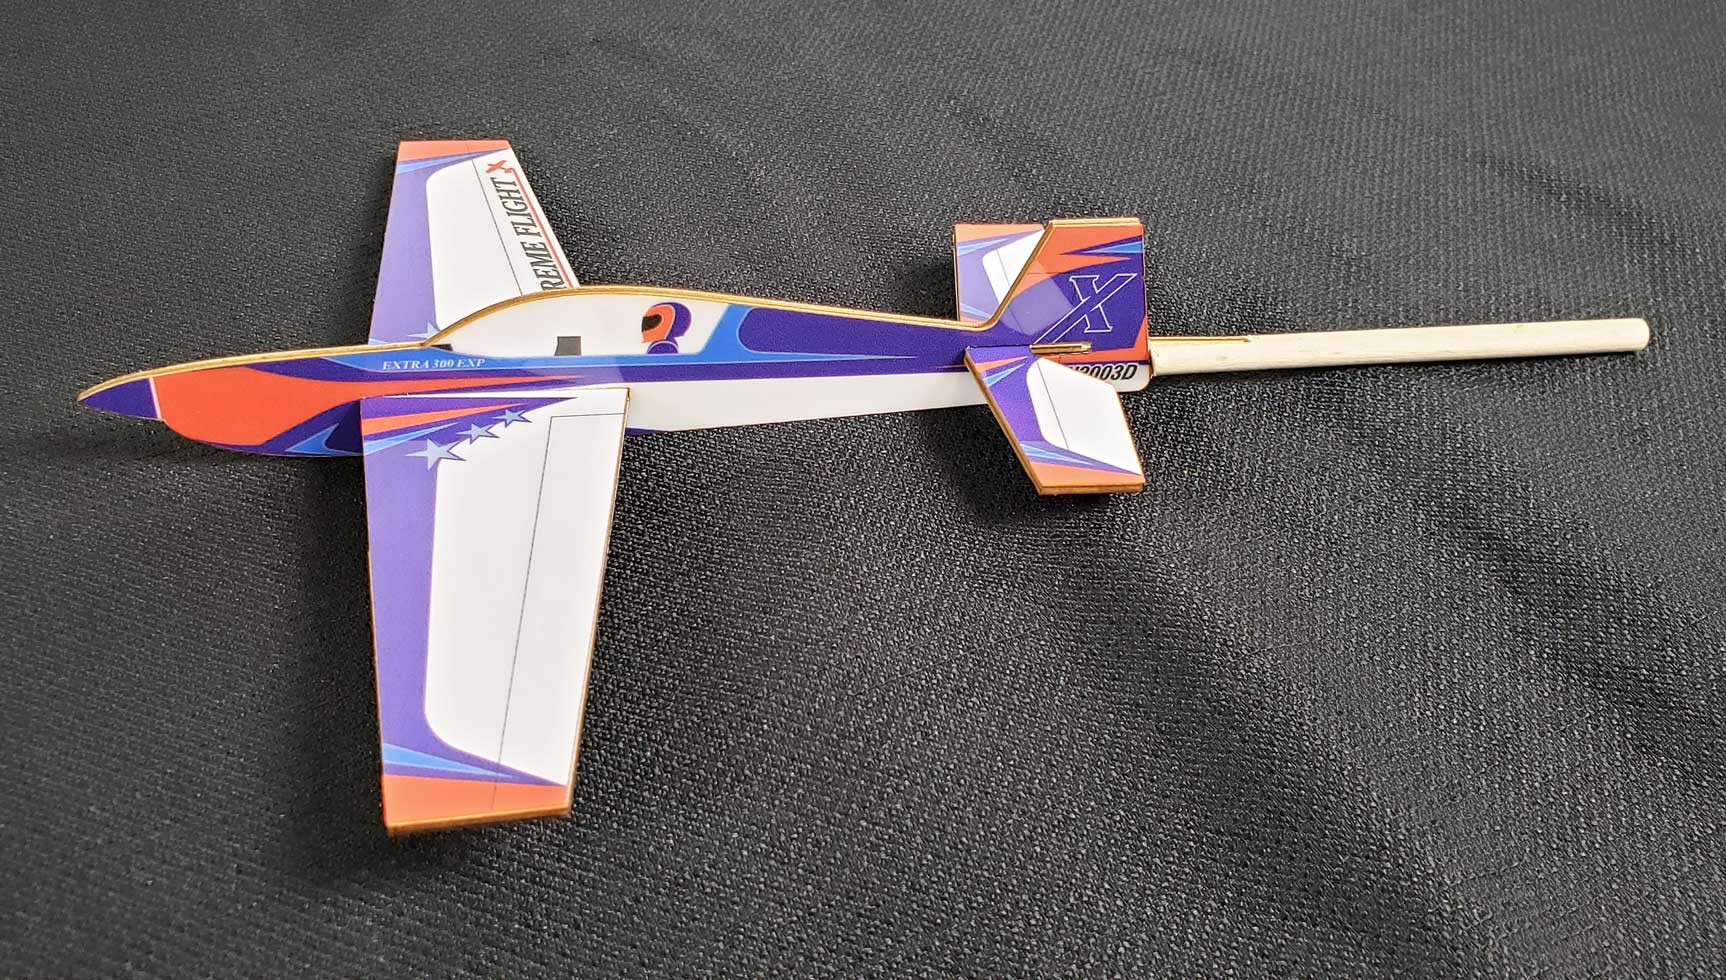 Extreme Flight Stick Plane - Extra Orange/White/Blue Scheme